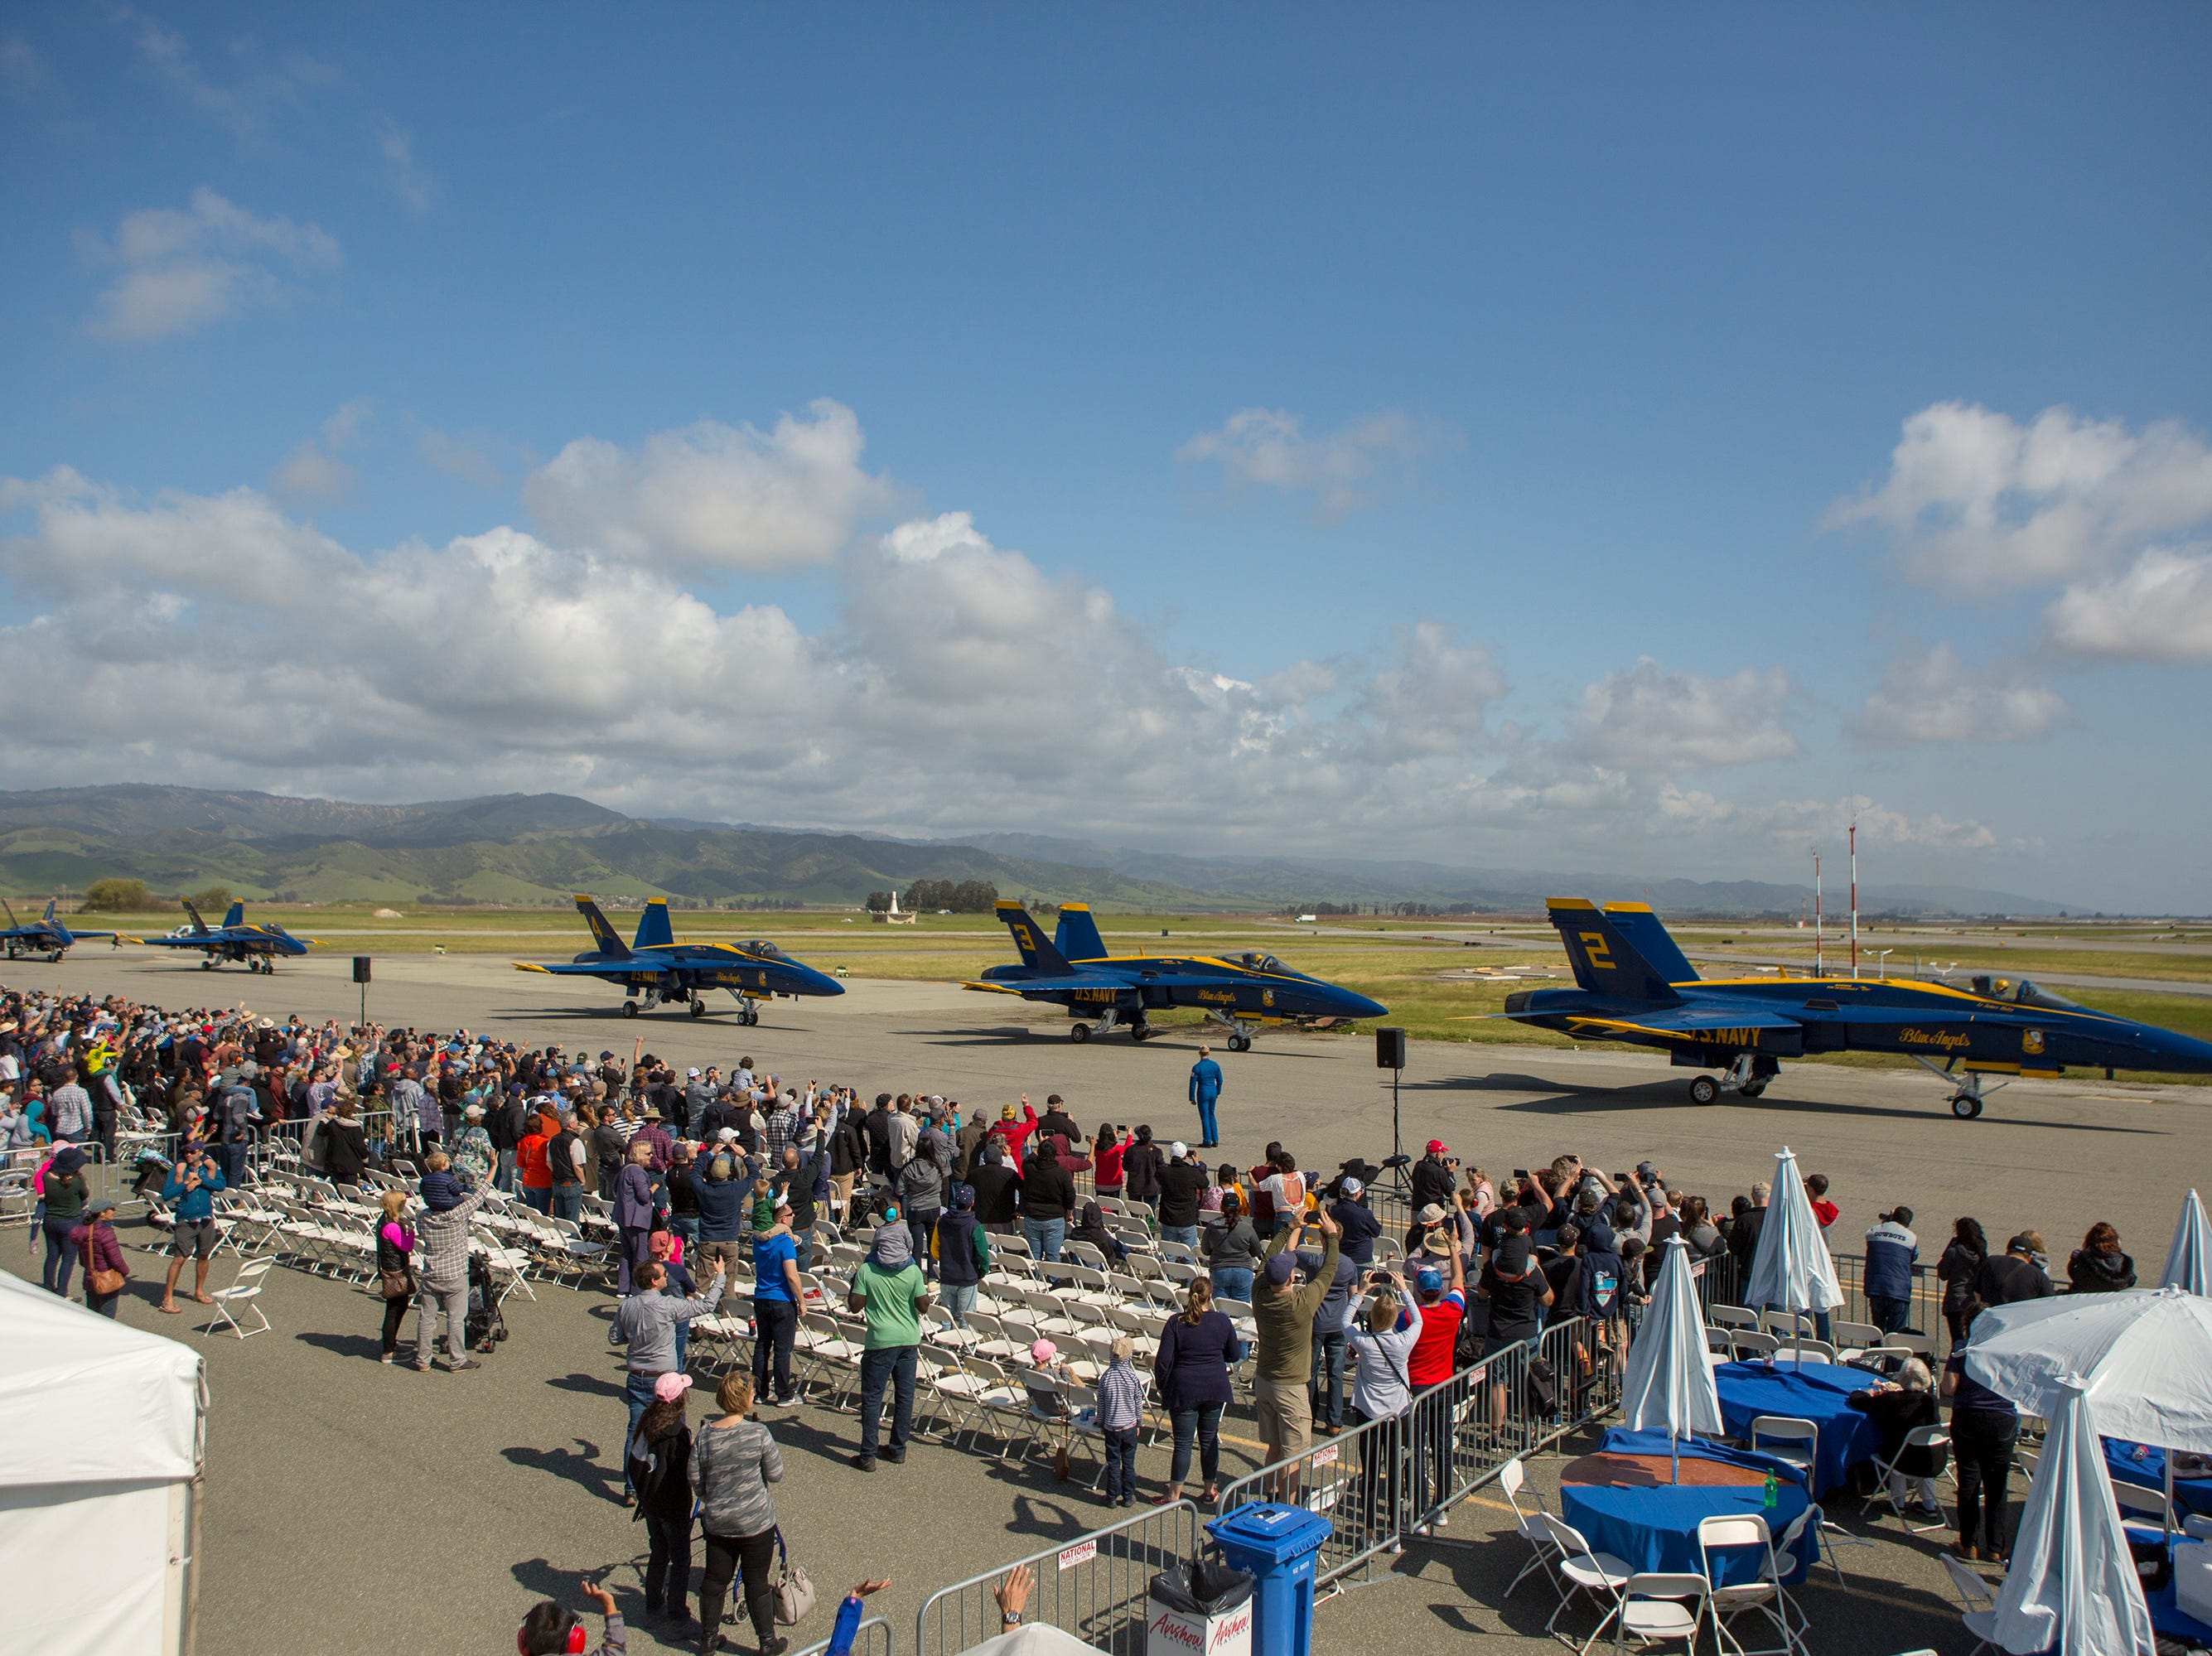 The Blue Angels taxi to takeoff during the California International Airshow Salinas at the Salinas Airport on March 23, 2019. (Photo by David Royal)